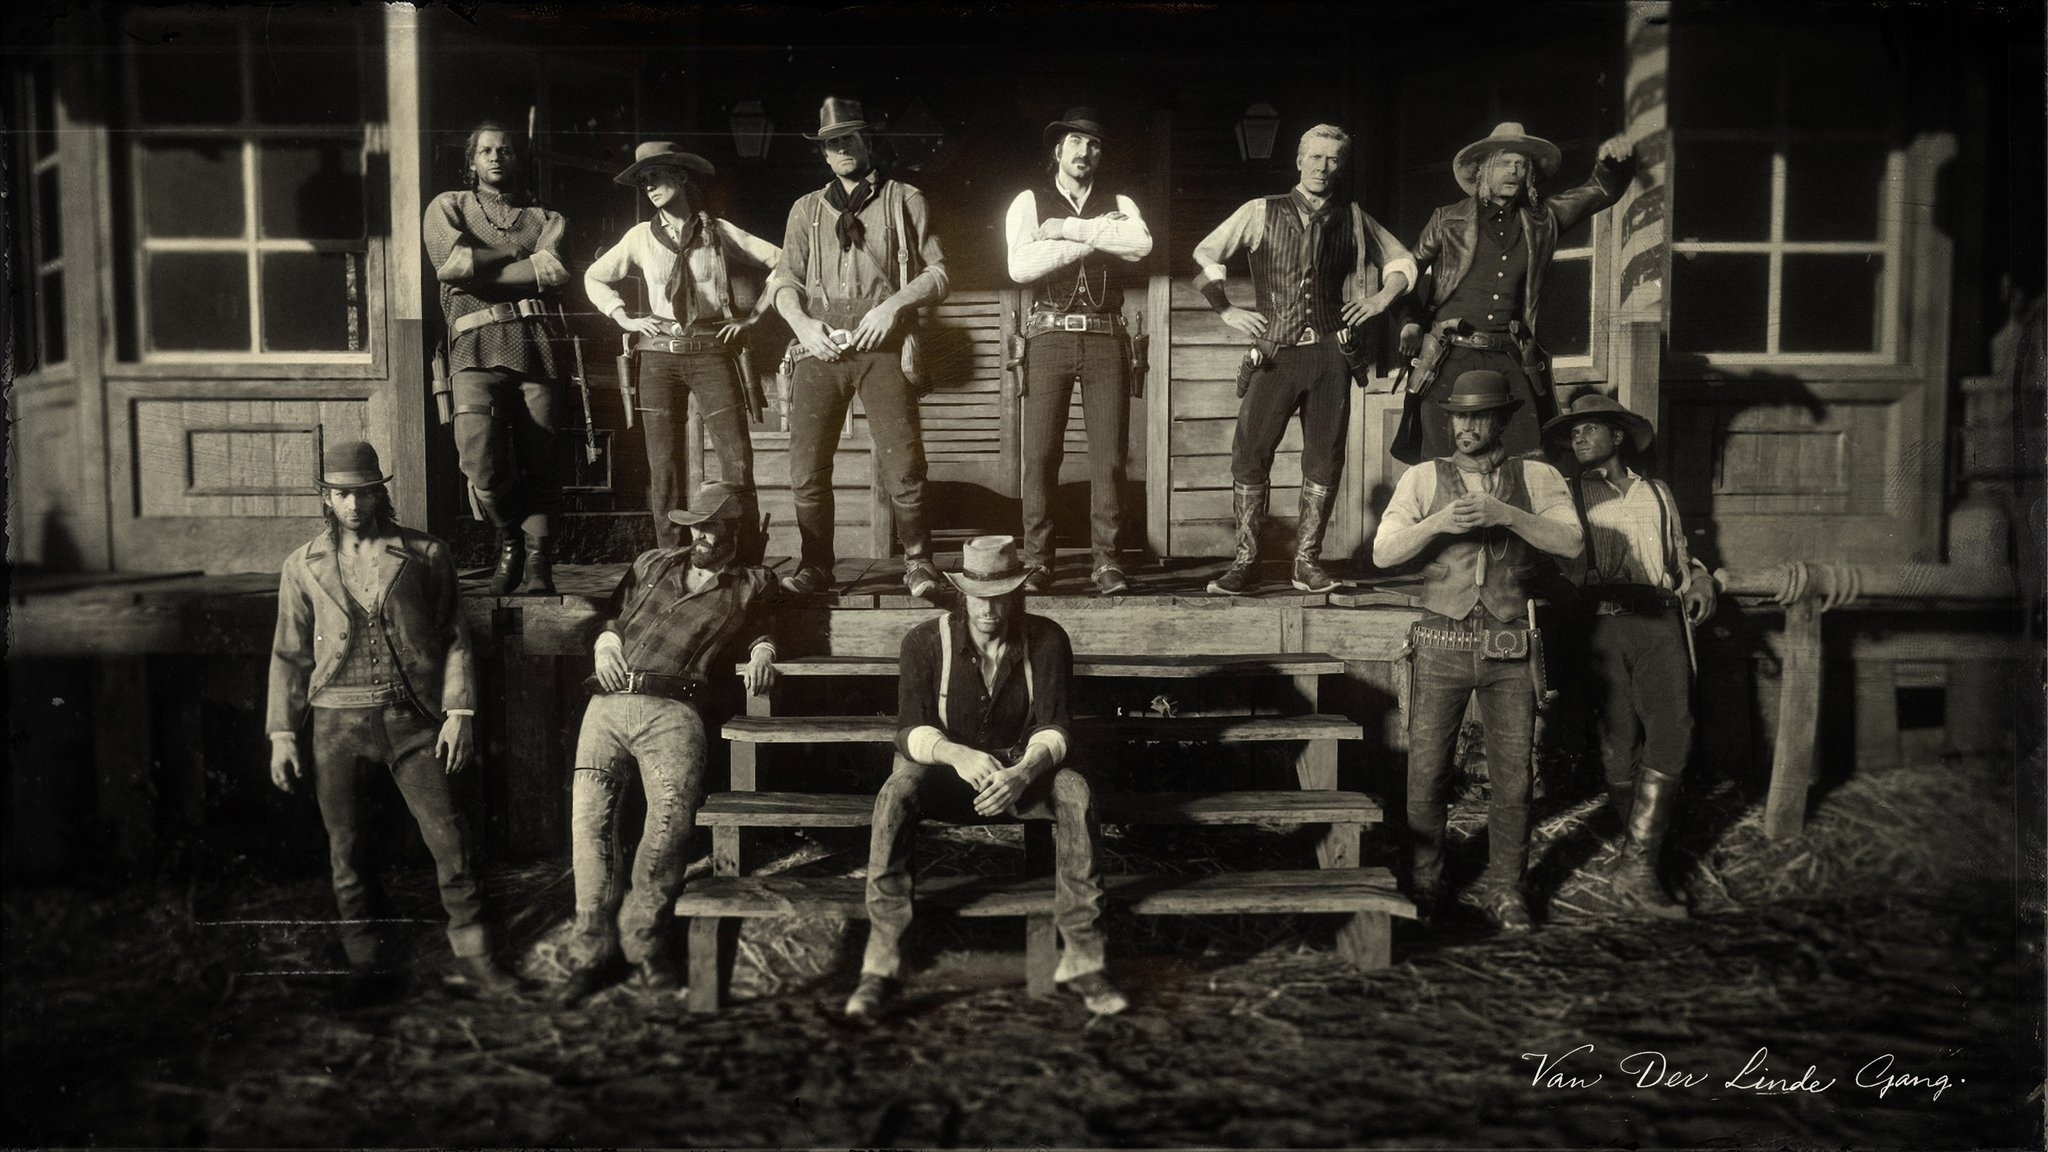 Gang Dutch Van der Linde Red Dead Redemption II